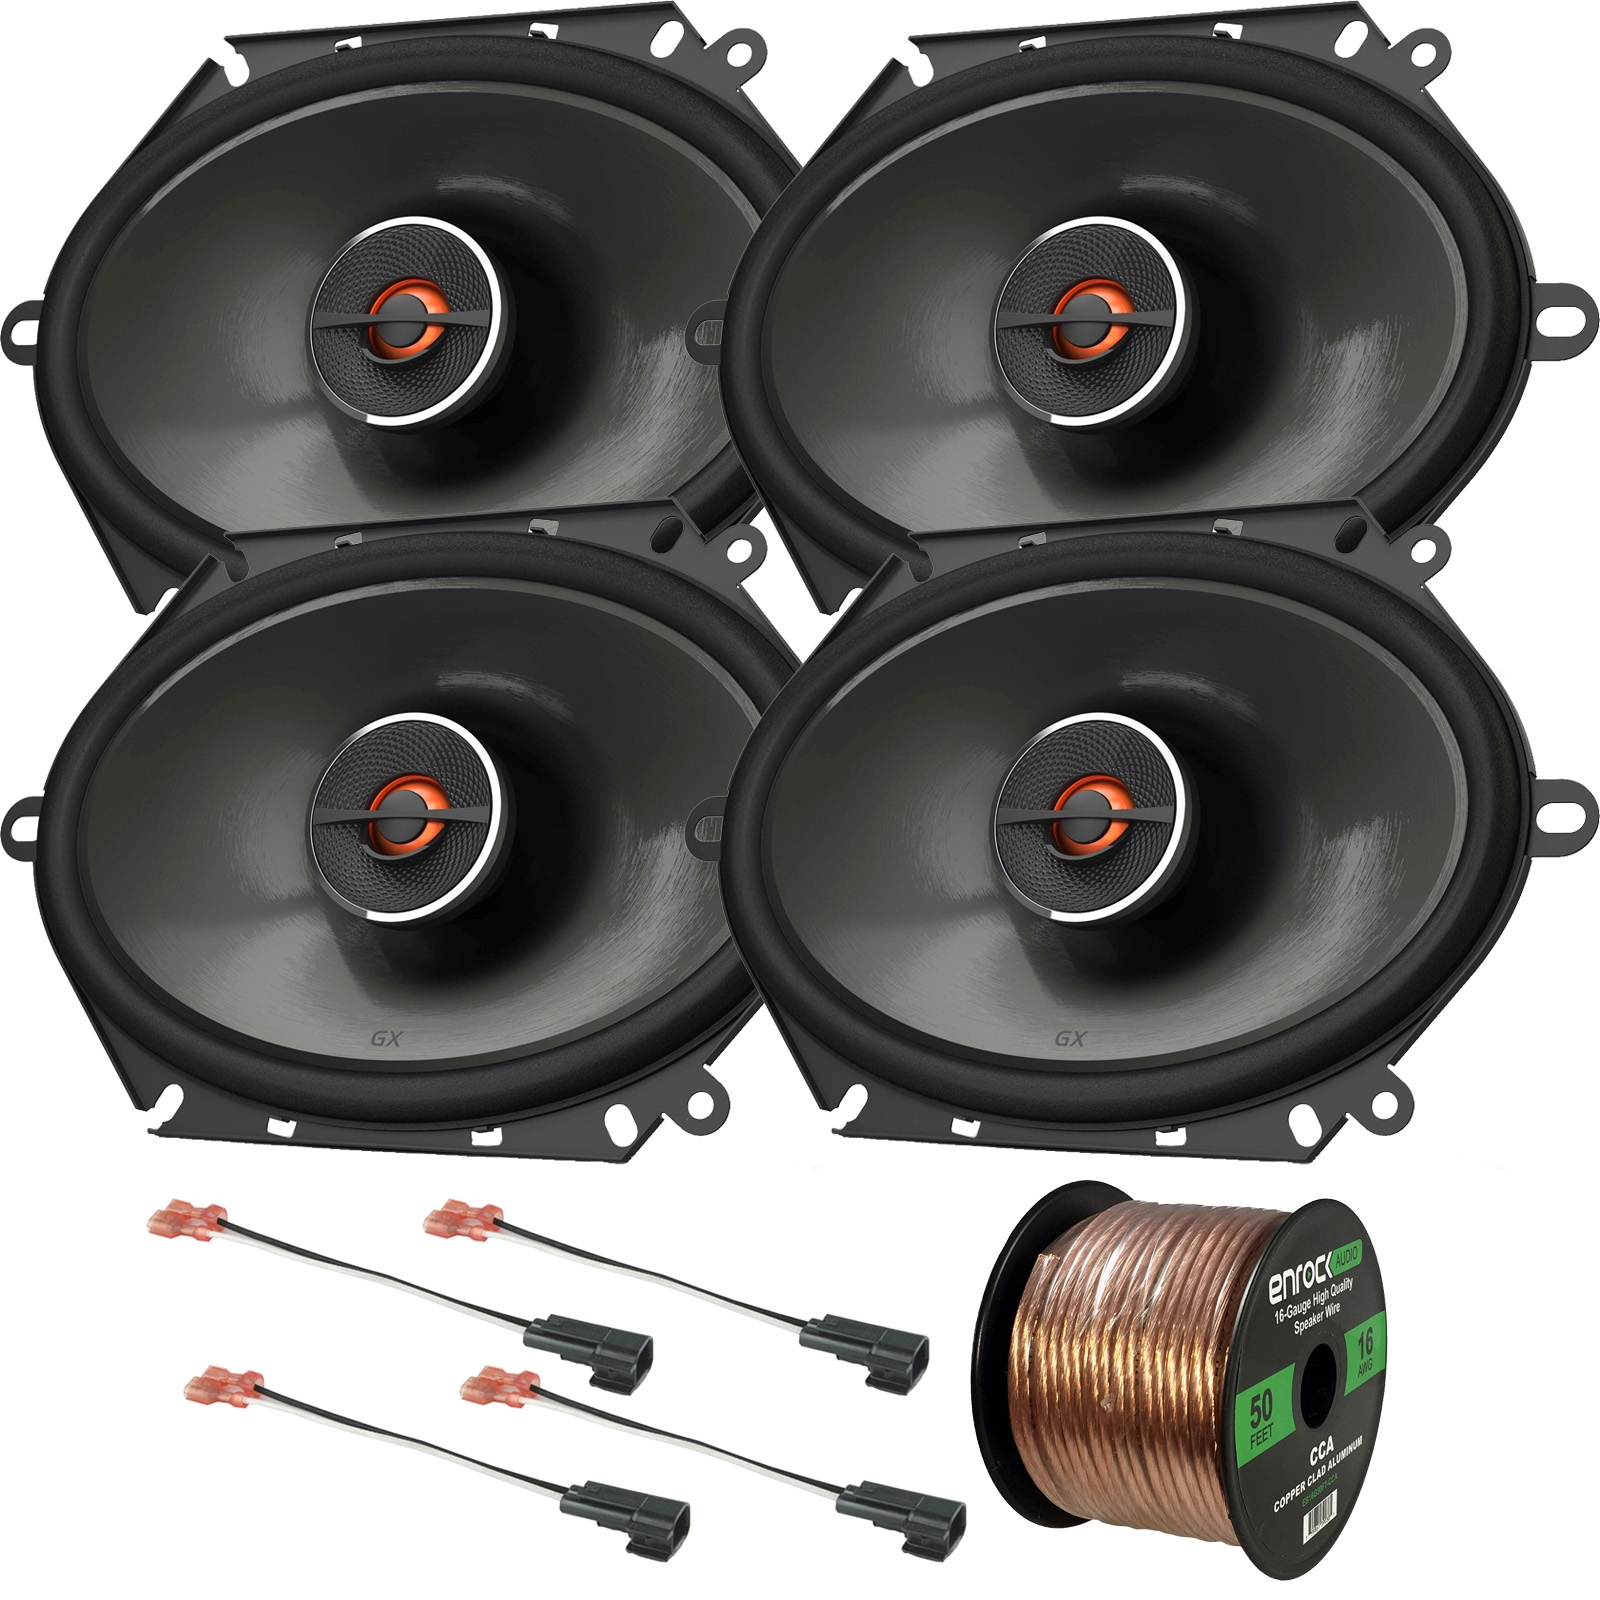 "4 x JBL GX862 5x7""/6x8"" Custom Fit 180W 2-Way Coaxial Audio Speakers (Bulk Packaging), 4 x Metra 72-5600 Speaker Adapters for Select Ford Vehicles, 16 Gauge 50Ft. Speaker Wire"